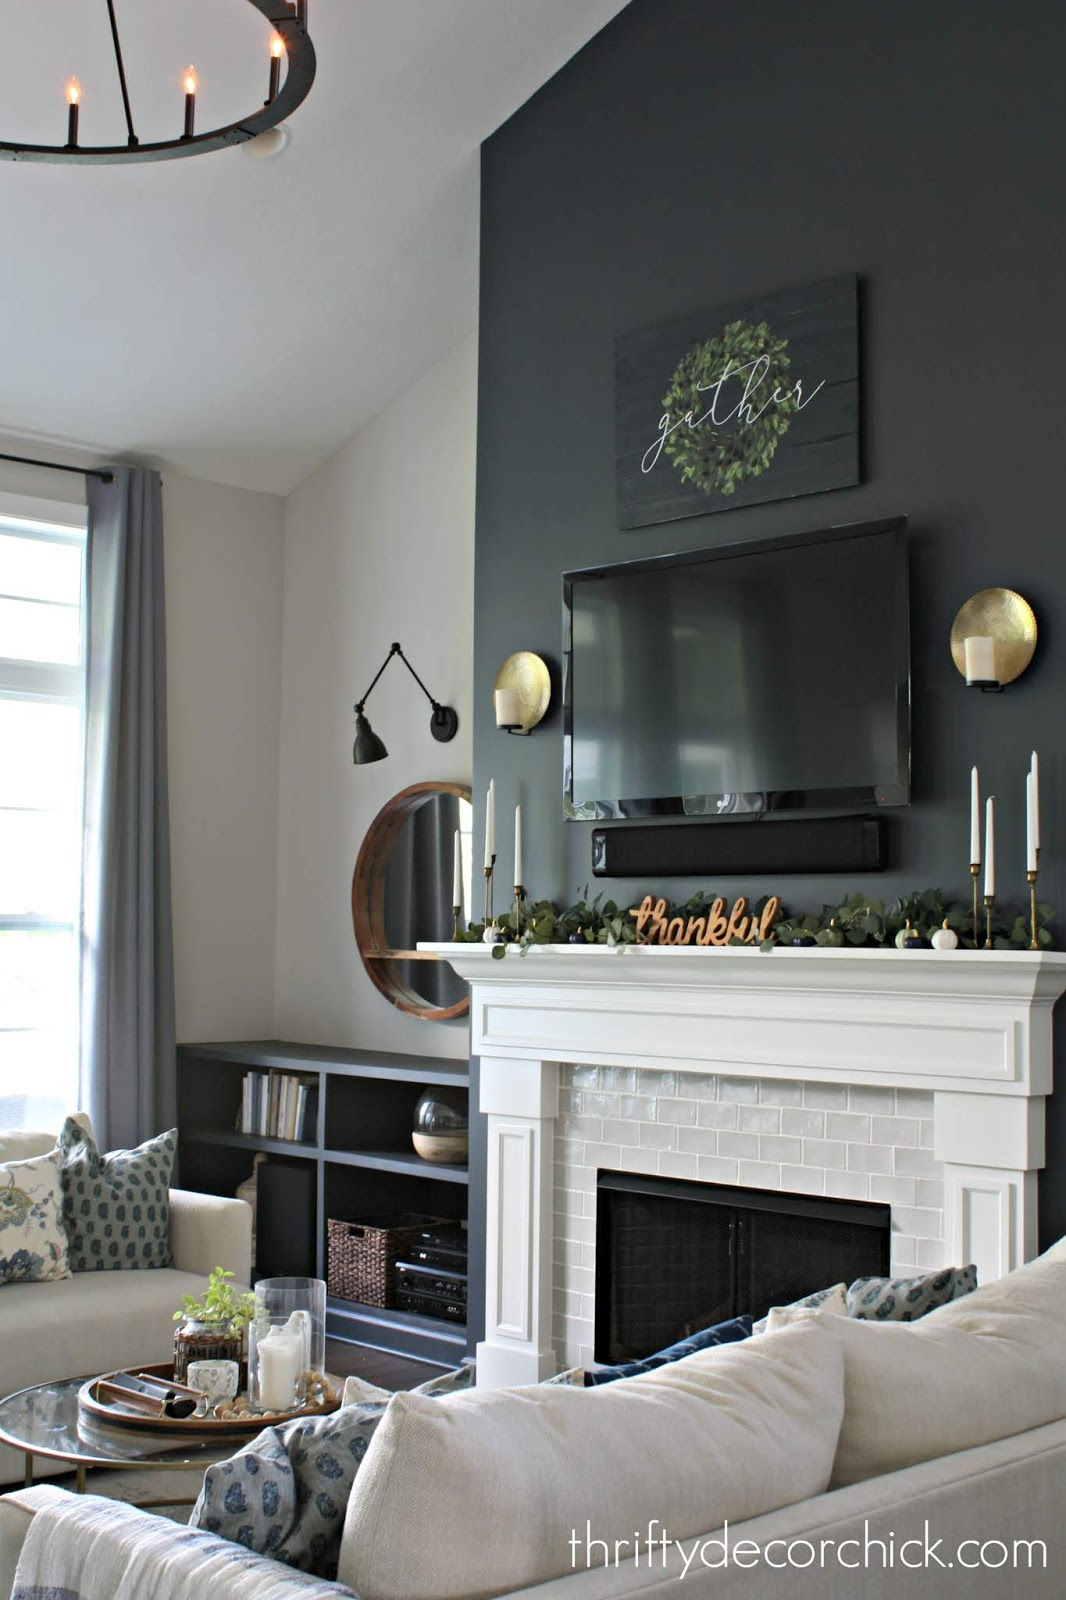 Simple and pretty fall mantel with greenery